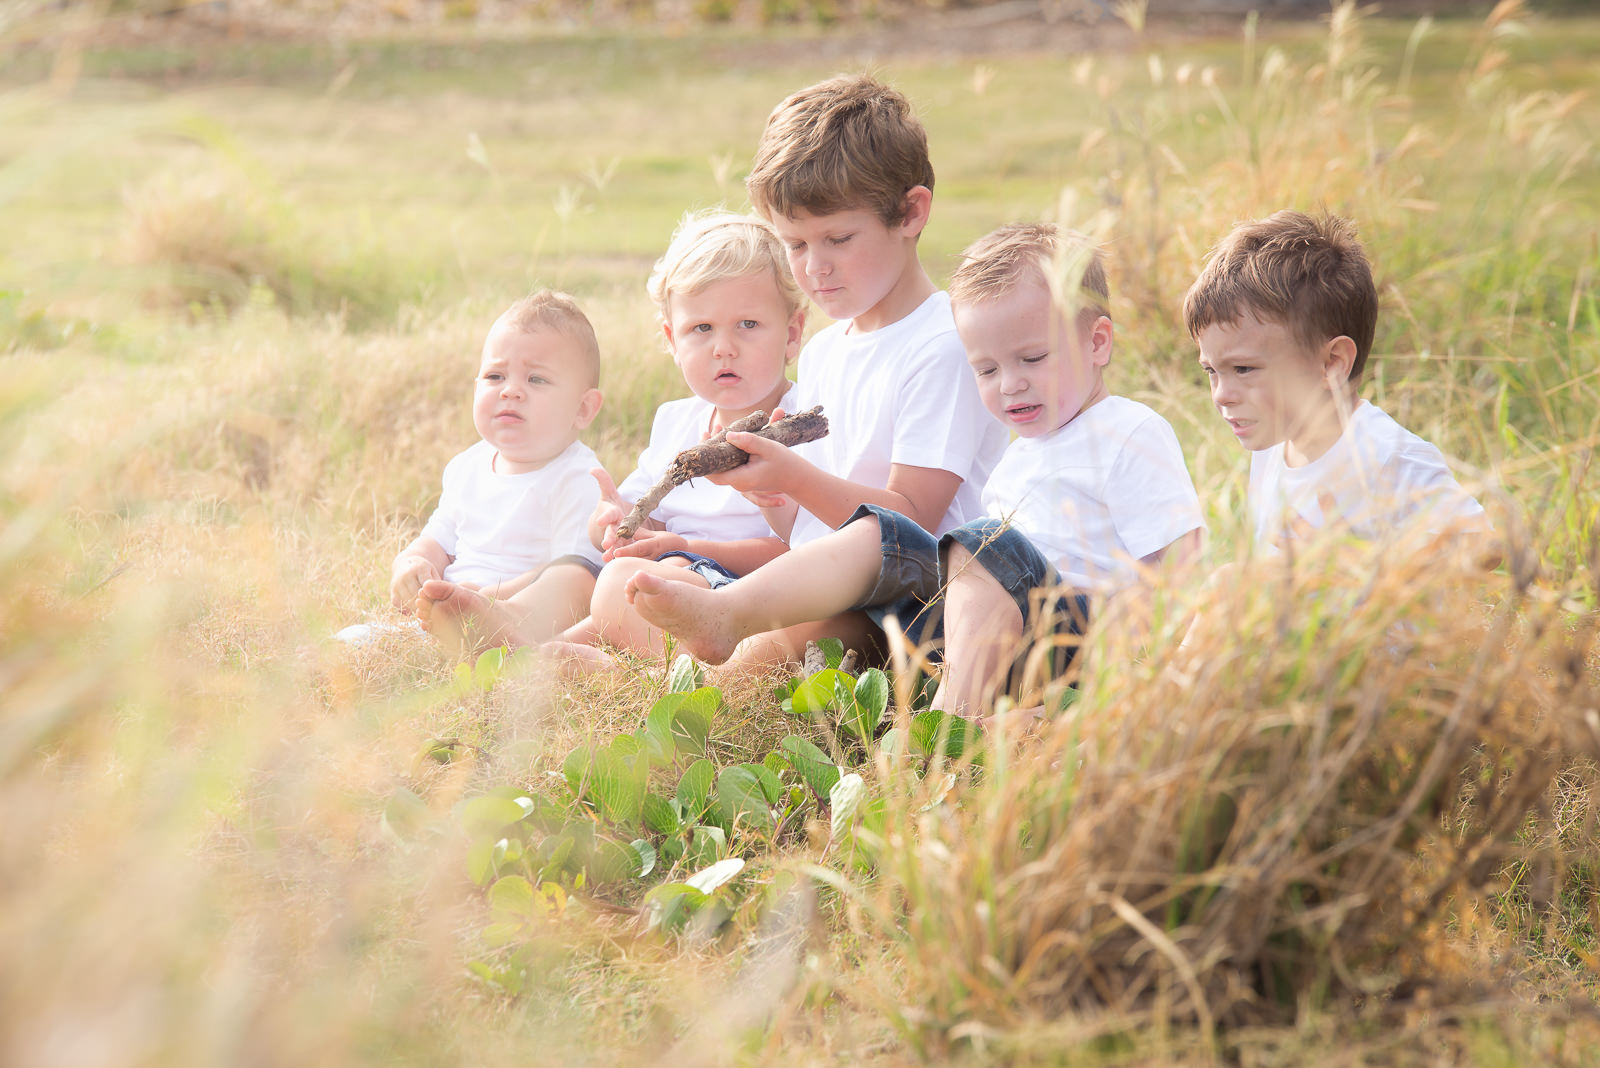 portrait of young boys all cousins sitting in long grass near shorncliffe pier